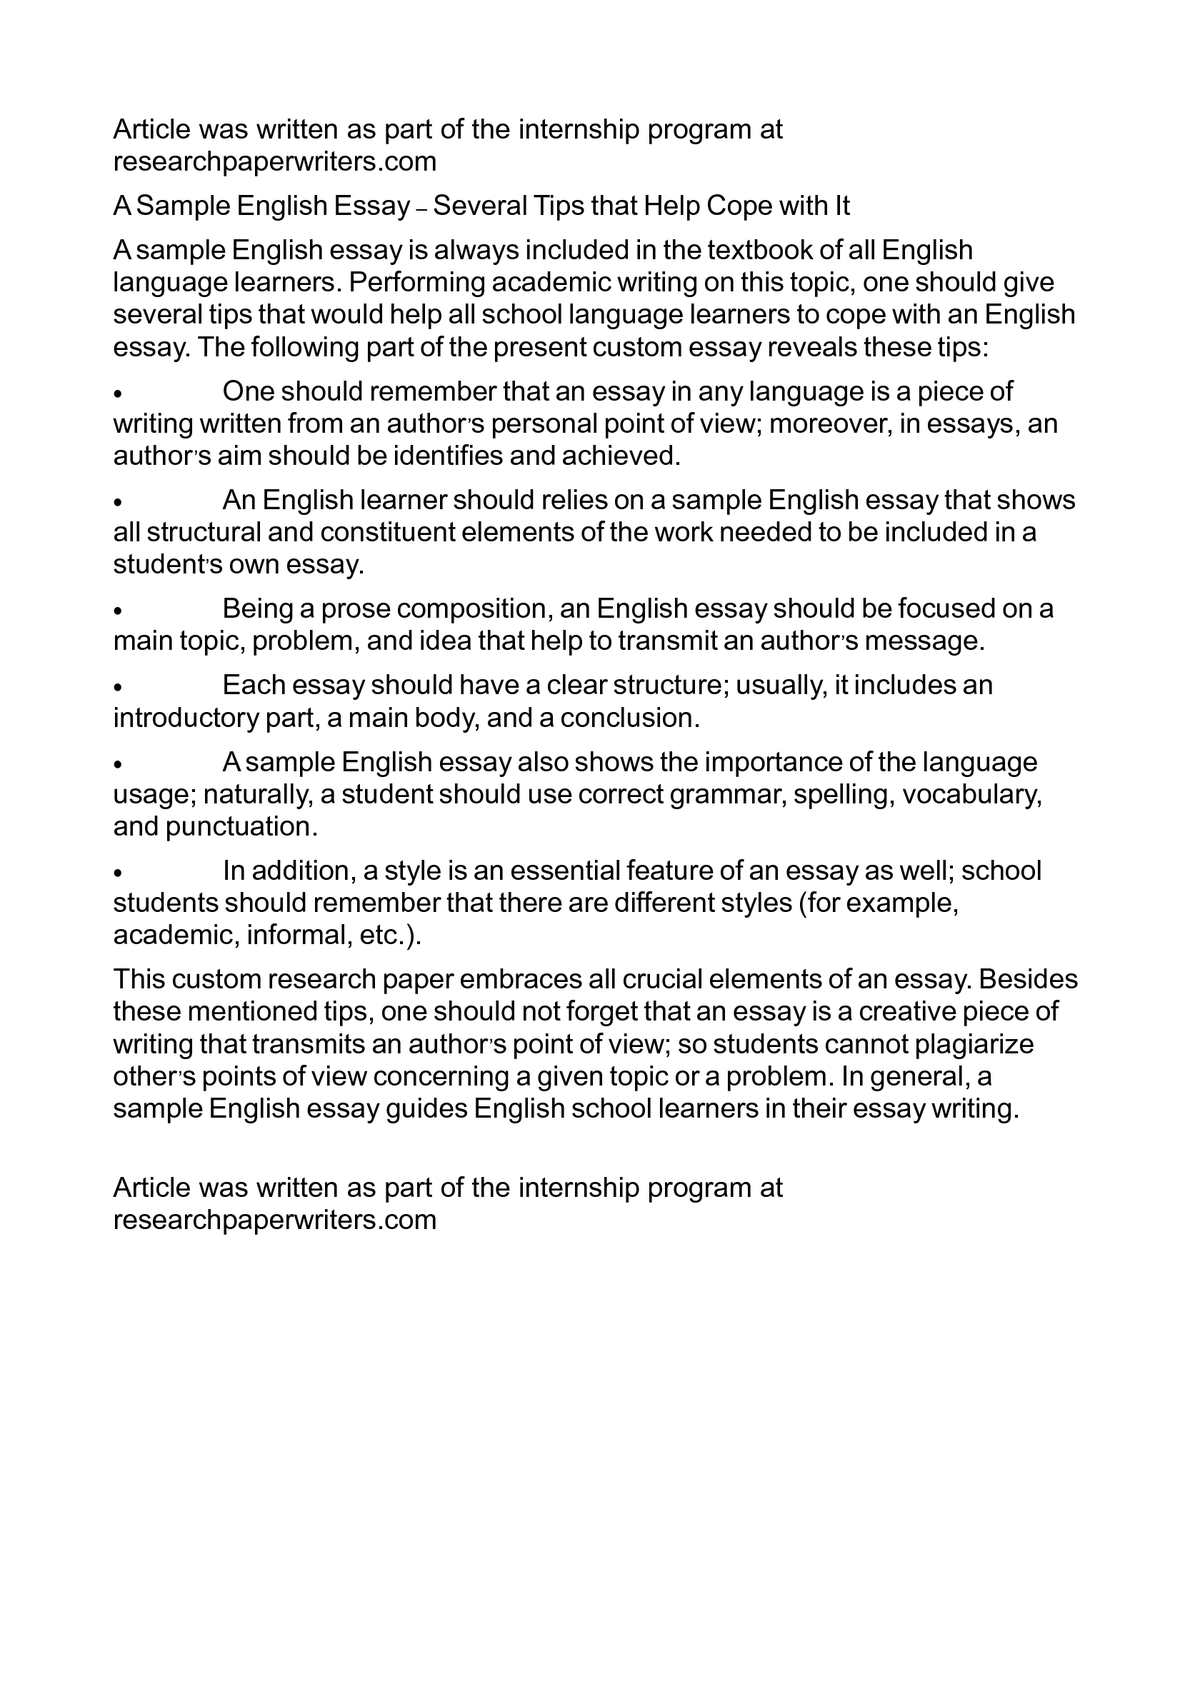 Example Thesis Statement Essay  How To Write A High School Essay also Teaching Essay Writing To High School Students Calamo   A Sample English Essay  Several Tips That Help  English Essay Topics